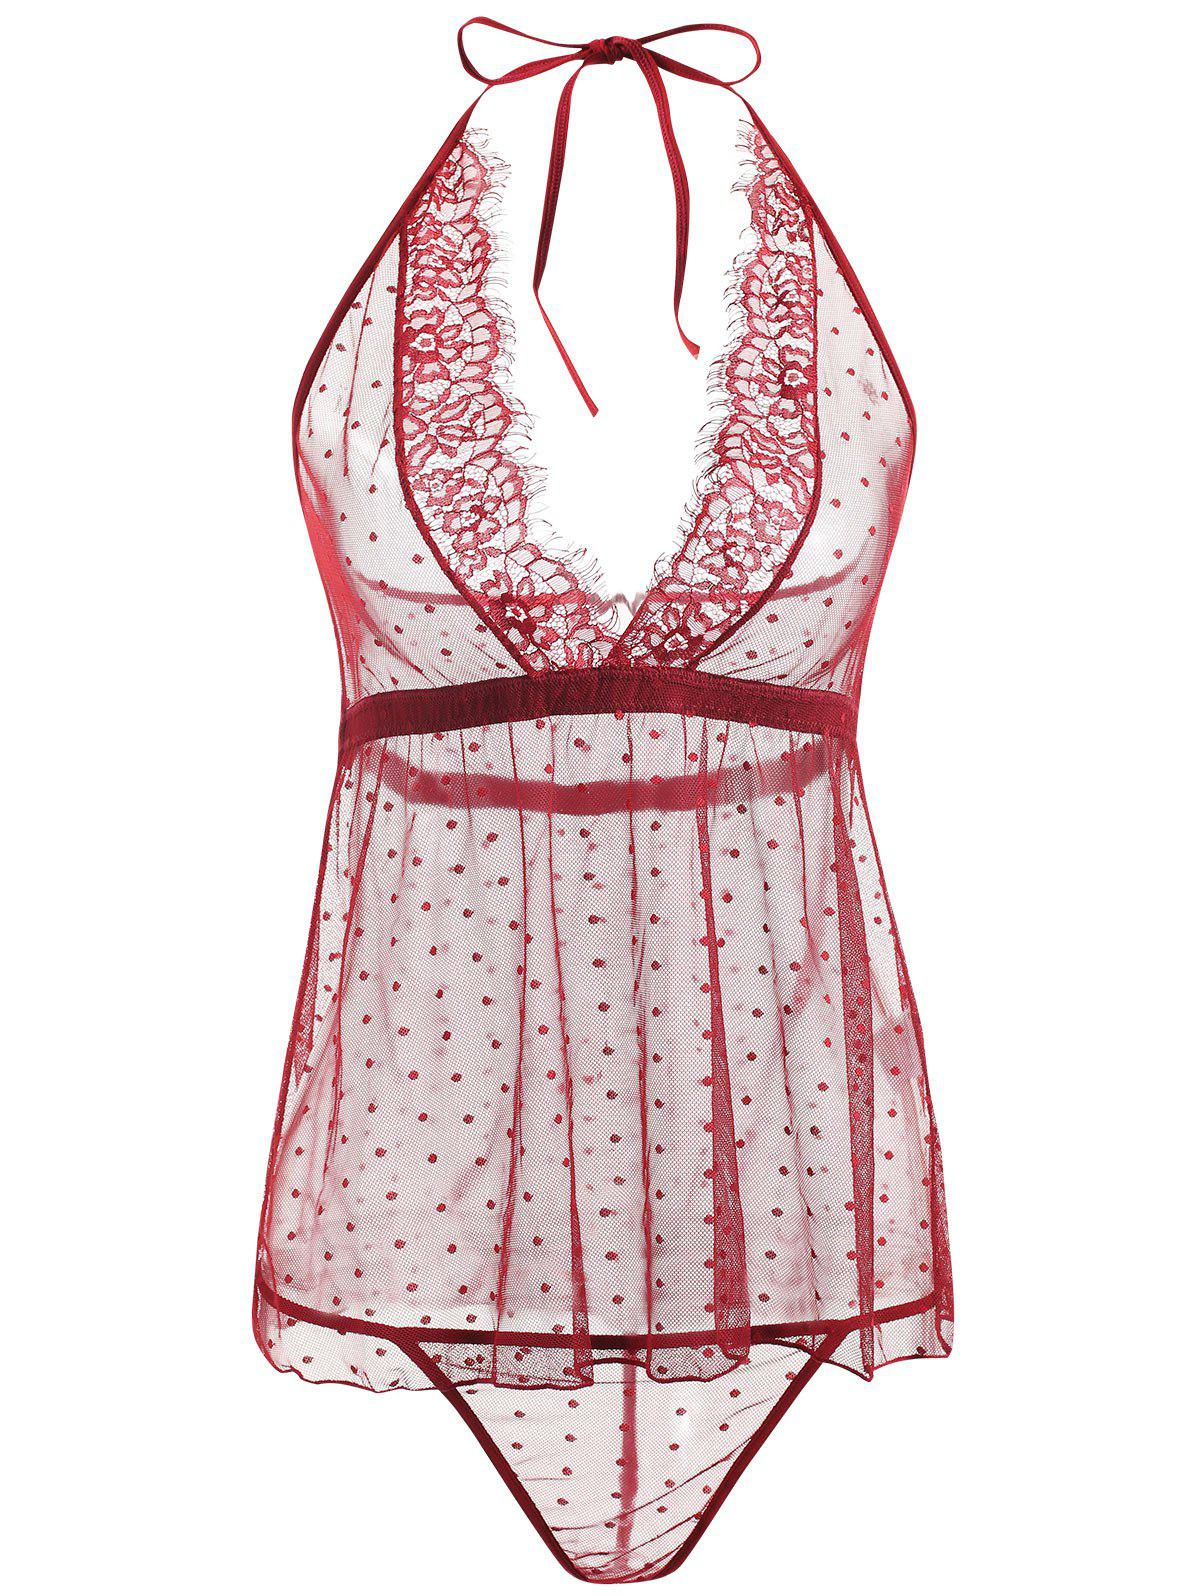 Lace Sheer Low Back Babydoll - WINE RED XL